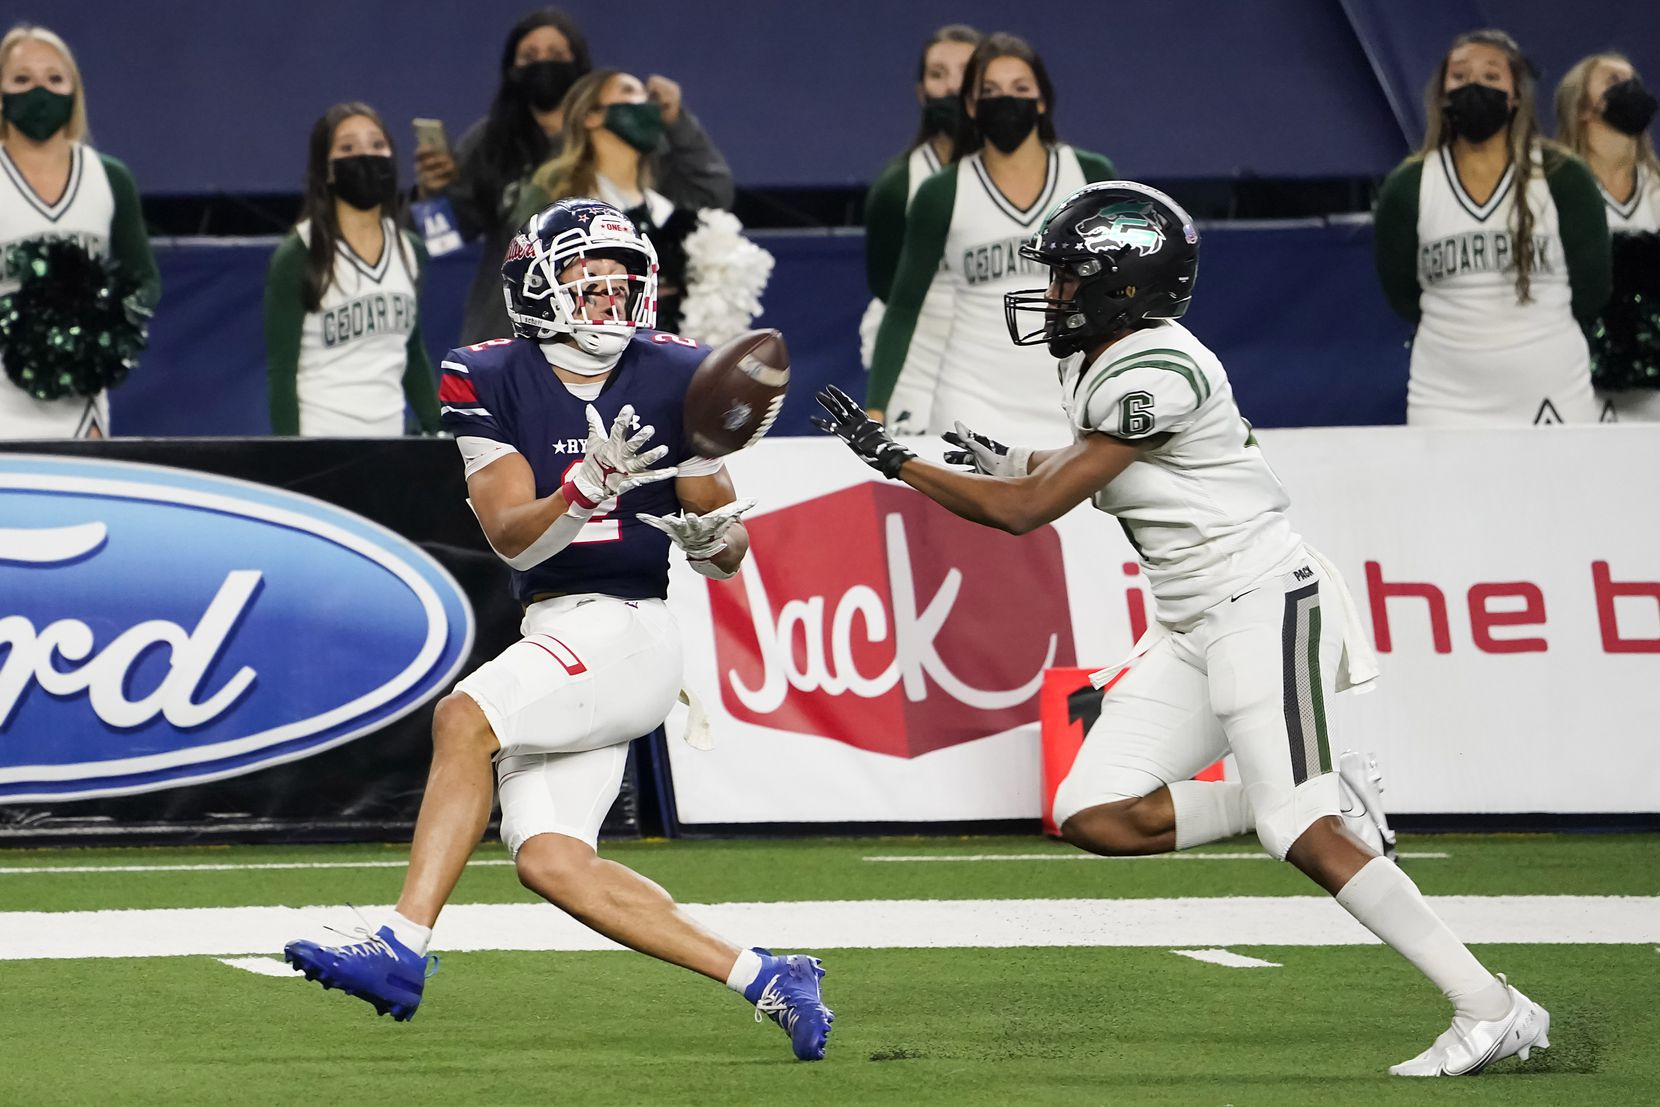 Denton Ryan Billy Bowman Jr. (2) hauls in a 37-yard touchdown pass from quarterback Seth Henigan as Cedar Park defensive back Michael Putney (6) defends during the first half of the Class 5A Division I state football championship game at AT&T Stadium on Friday, Jan. 15, 2021, in Arlington, Texas. (Smiley N. Pool/The Dallas Morning News)